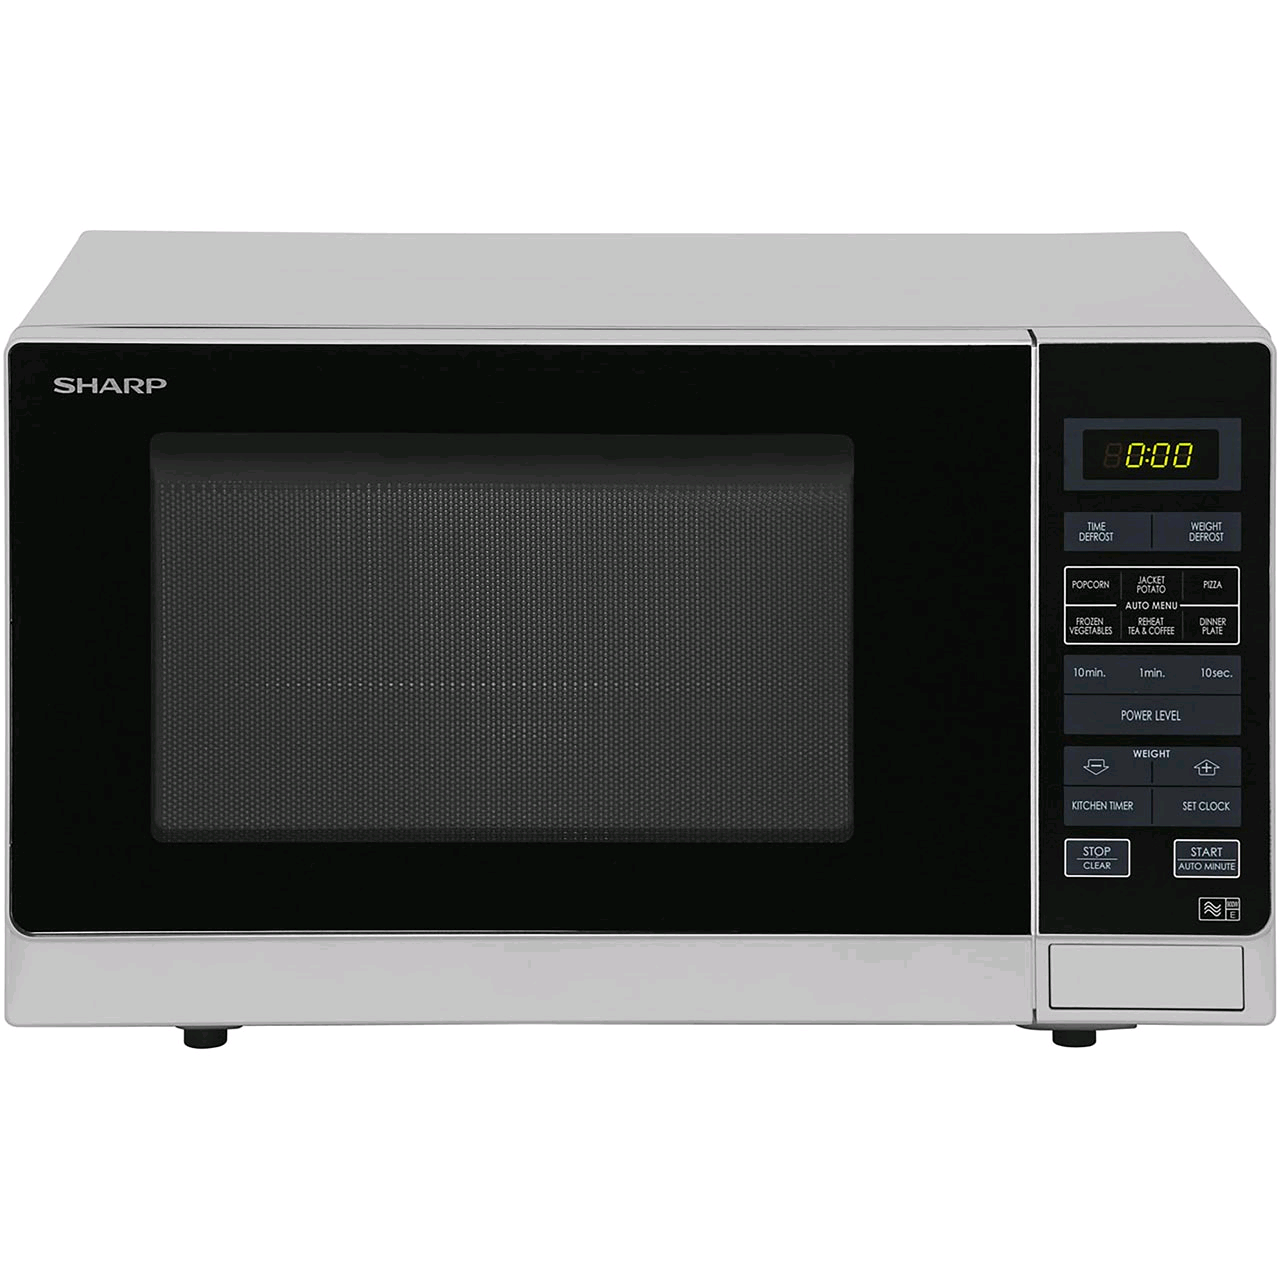 Sharp Microwave Touch Control Silver 25Ltr